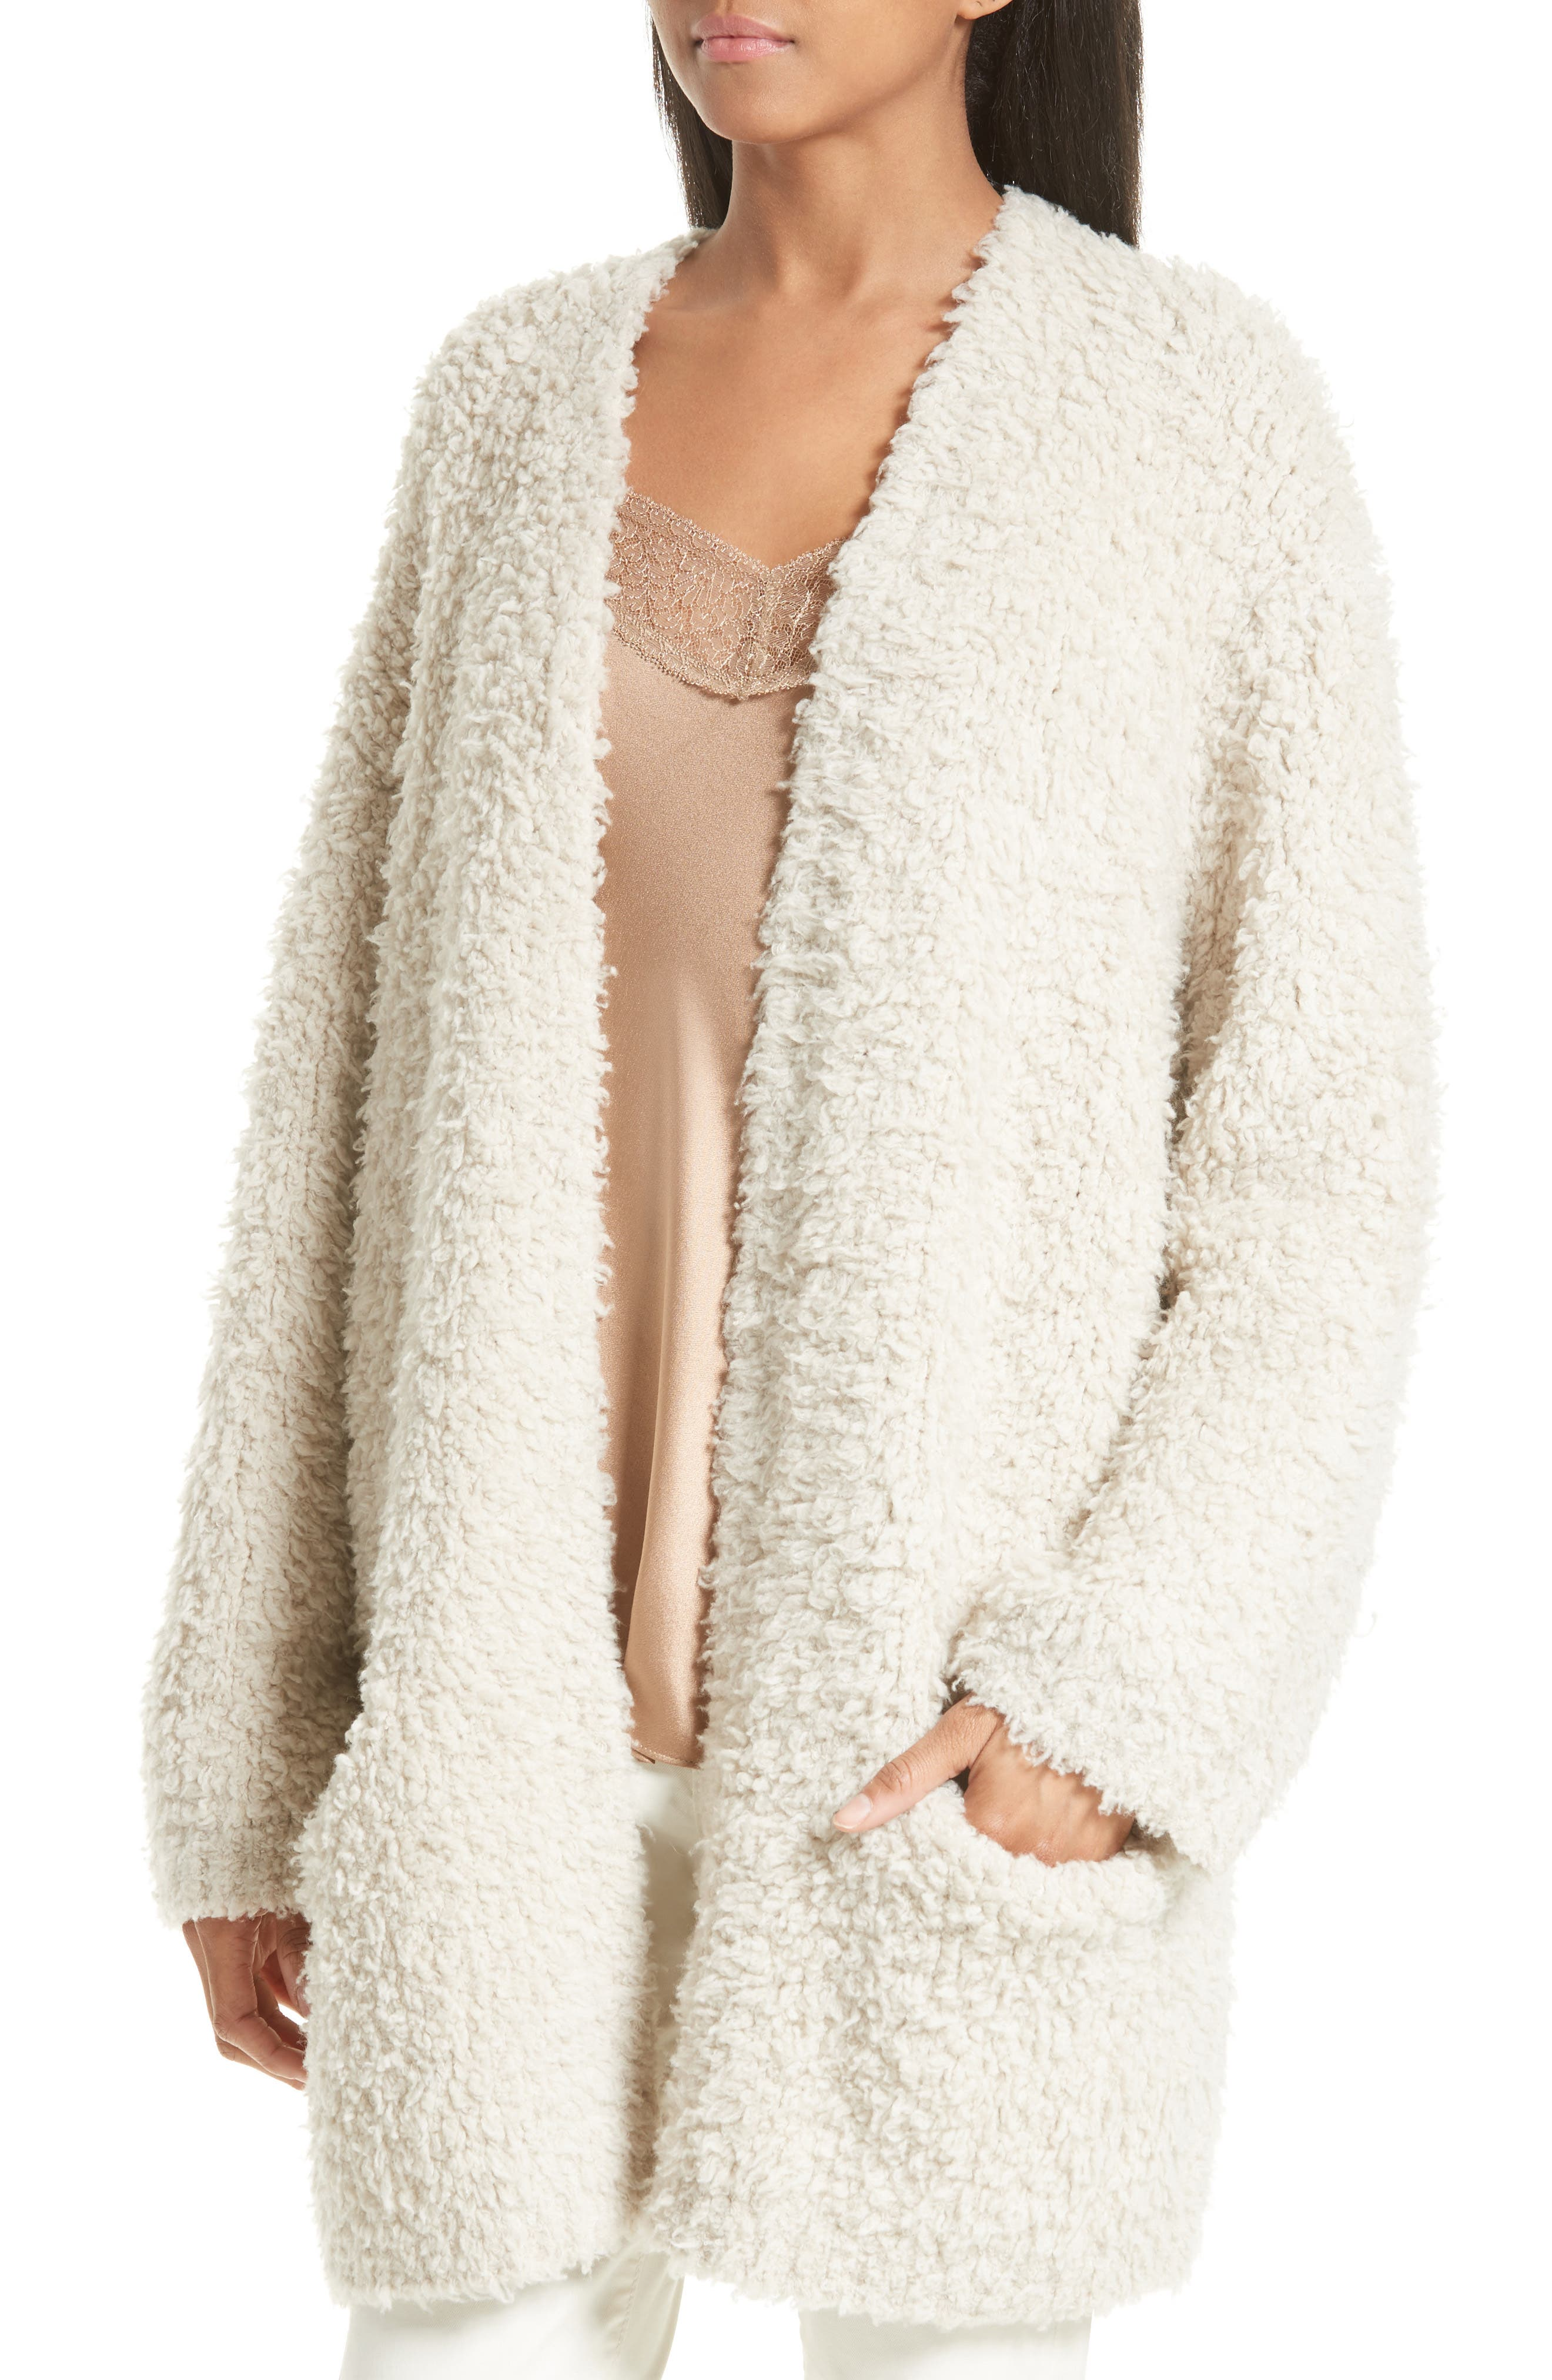 Wool Blend Teddy Cardigan,                             Alternate thumbnail 4, color,                             266